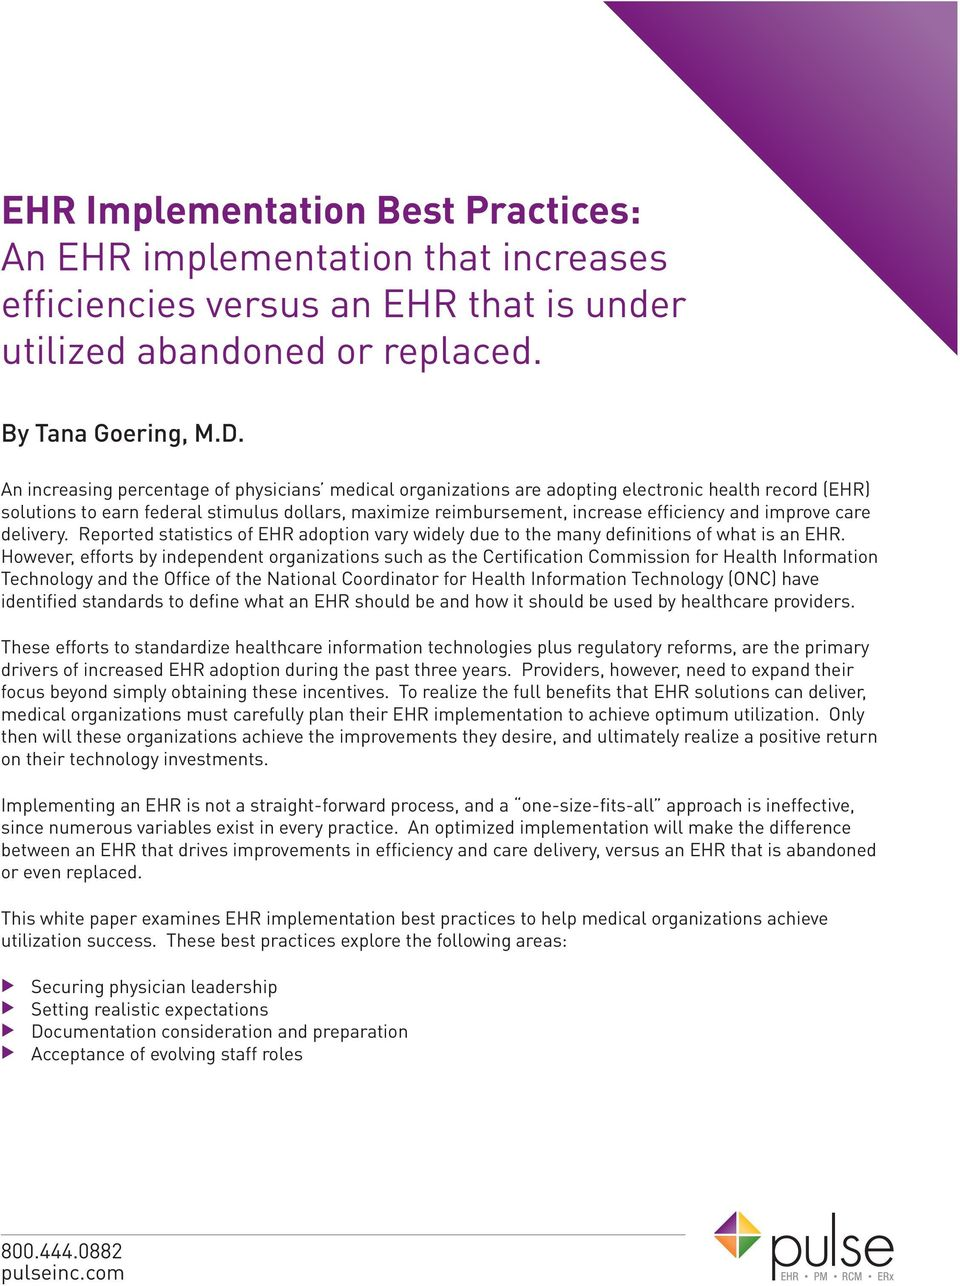 improve care delivery. Reported statistics of EHR adoption vary widely due to the many definitions of what is an EHR.